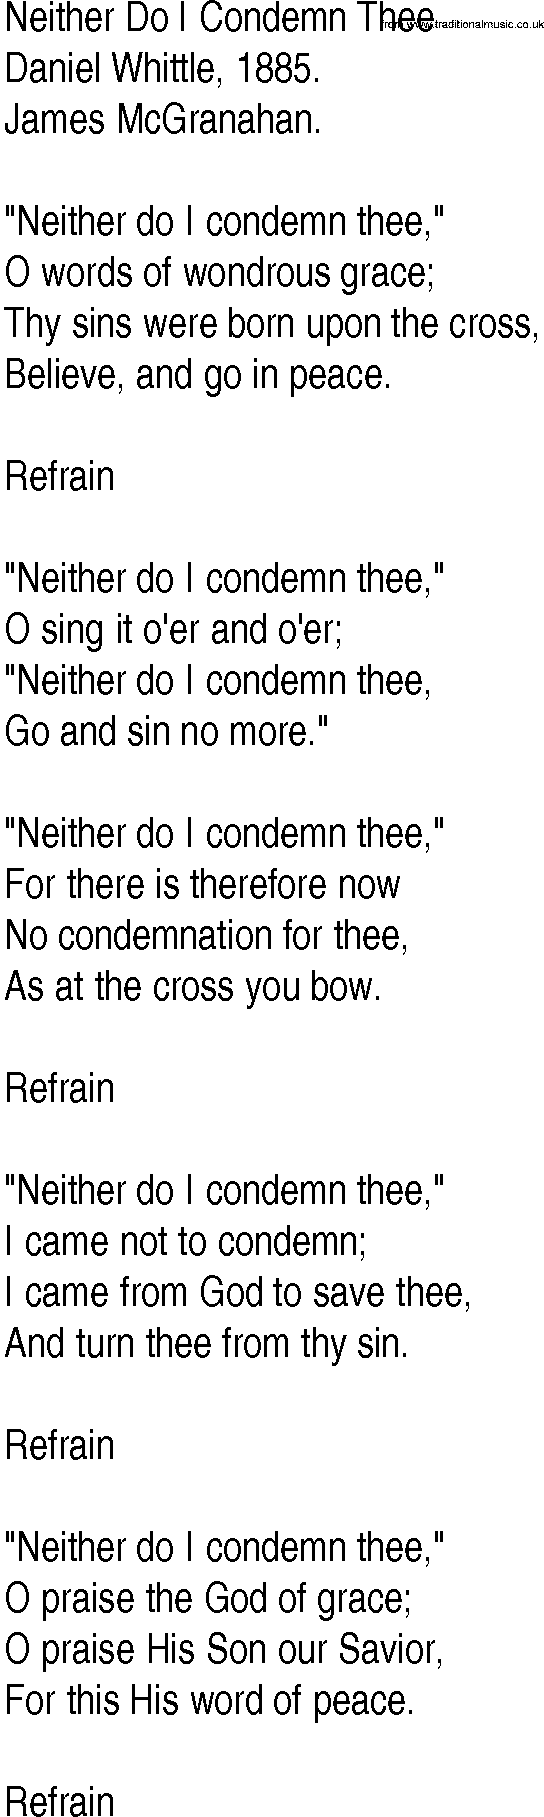 Neither do i condemn thee song